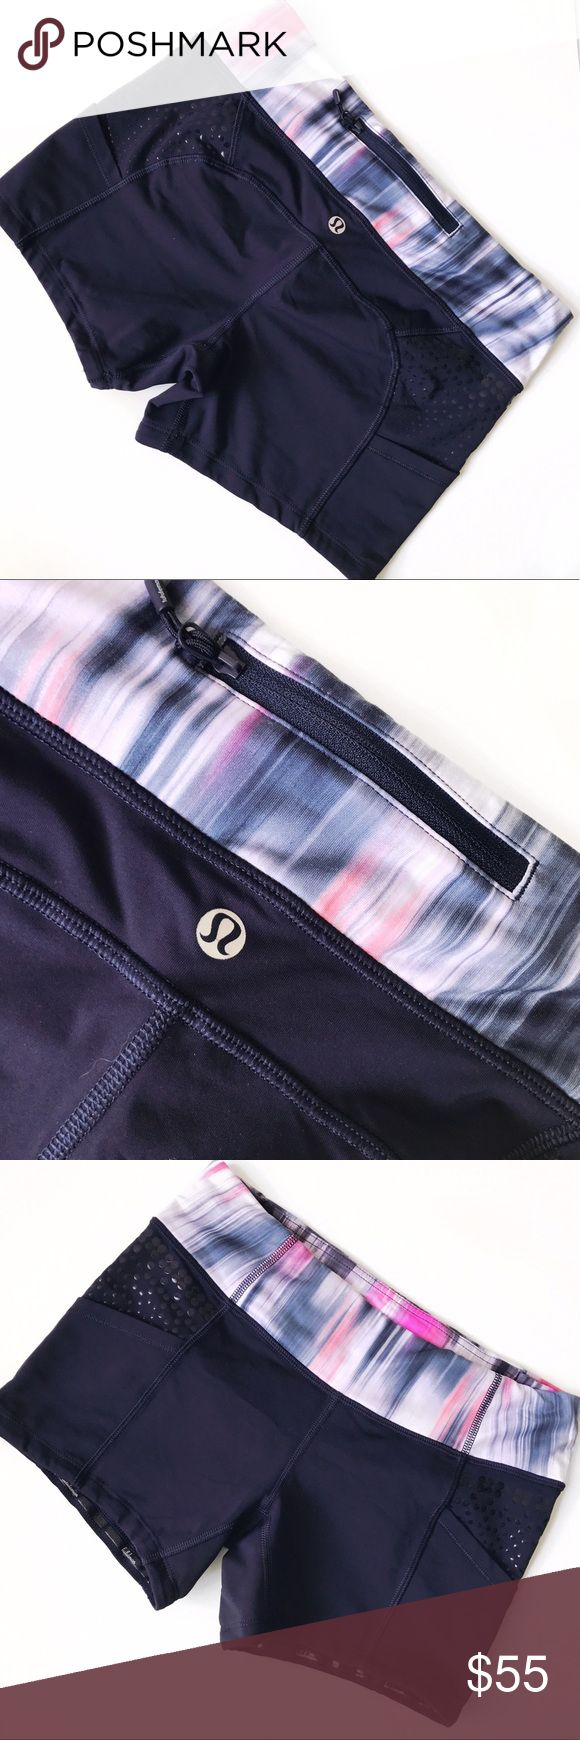 """➡lululemon athletica Dart and Dash Short⬅ The smooth Luxtreme waistband wicks away sweat and won't cut in. Cinch the drawcord for a secure fit at the waist. Silicone gripper print helps keep fitted running tops in place. Chafe-resistant flat seams help sensitive skin from getting irritated. Washed and worn once. properties: moisture wicking, chafe-resistant, breathable Approx. inseam: 6"""" lululemon athletica Shorts"""